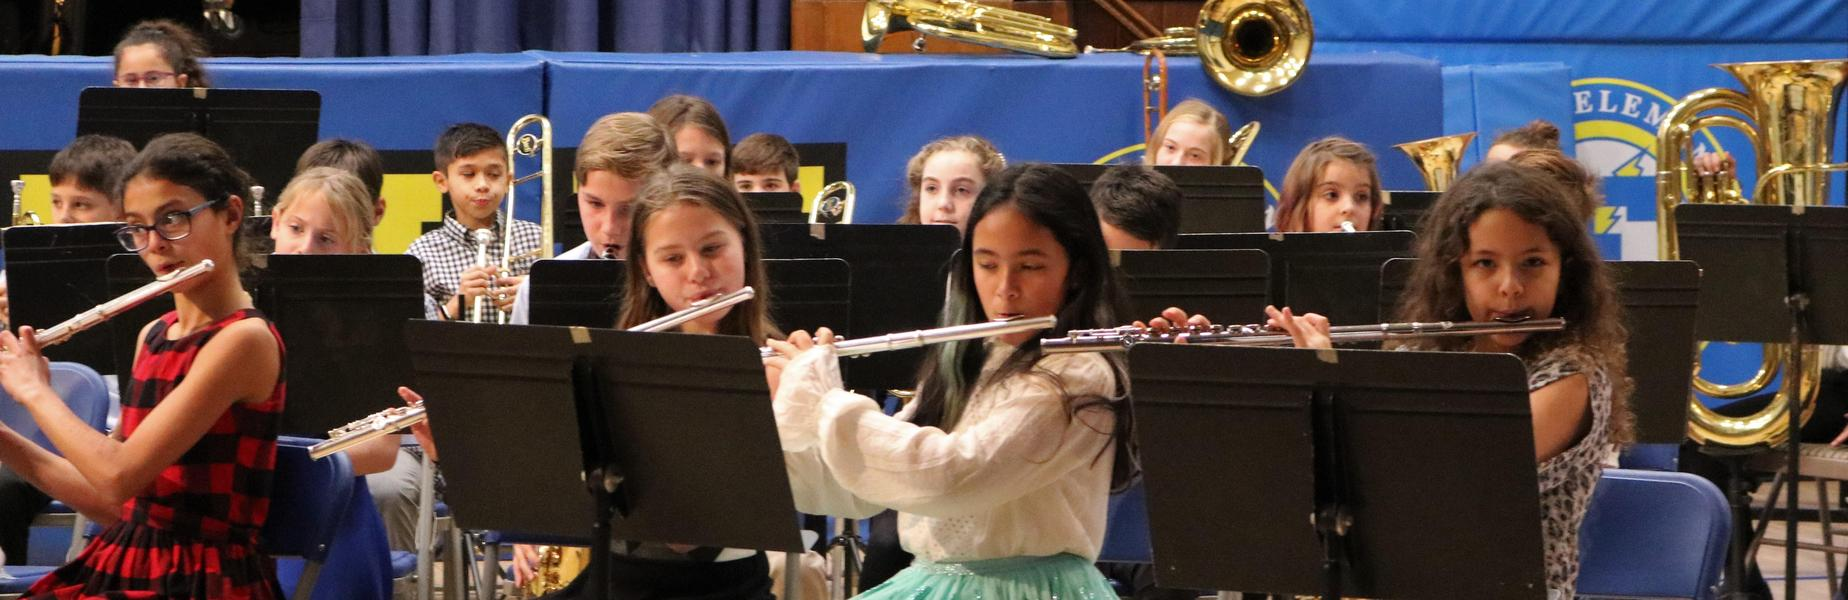 Photo of Franklin 5th grade flute players during winter band concert.